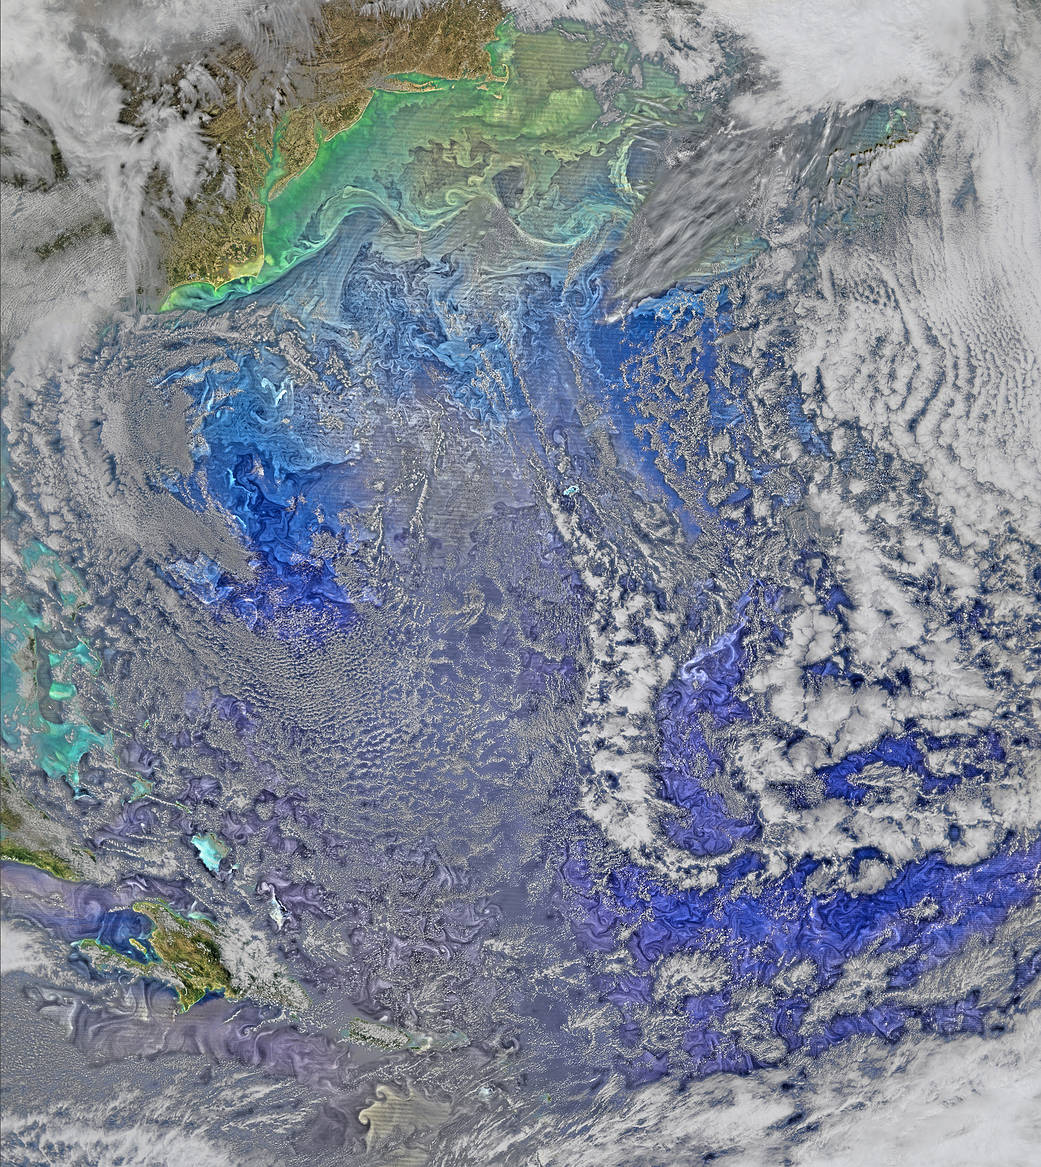 Satellite image of ocean with bright swirls of phytoplankton and white clouds overhead